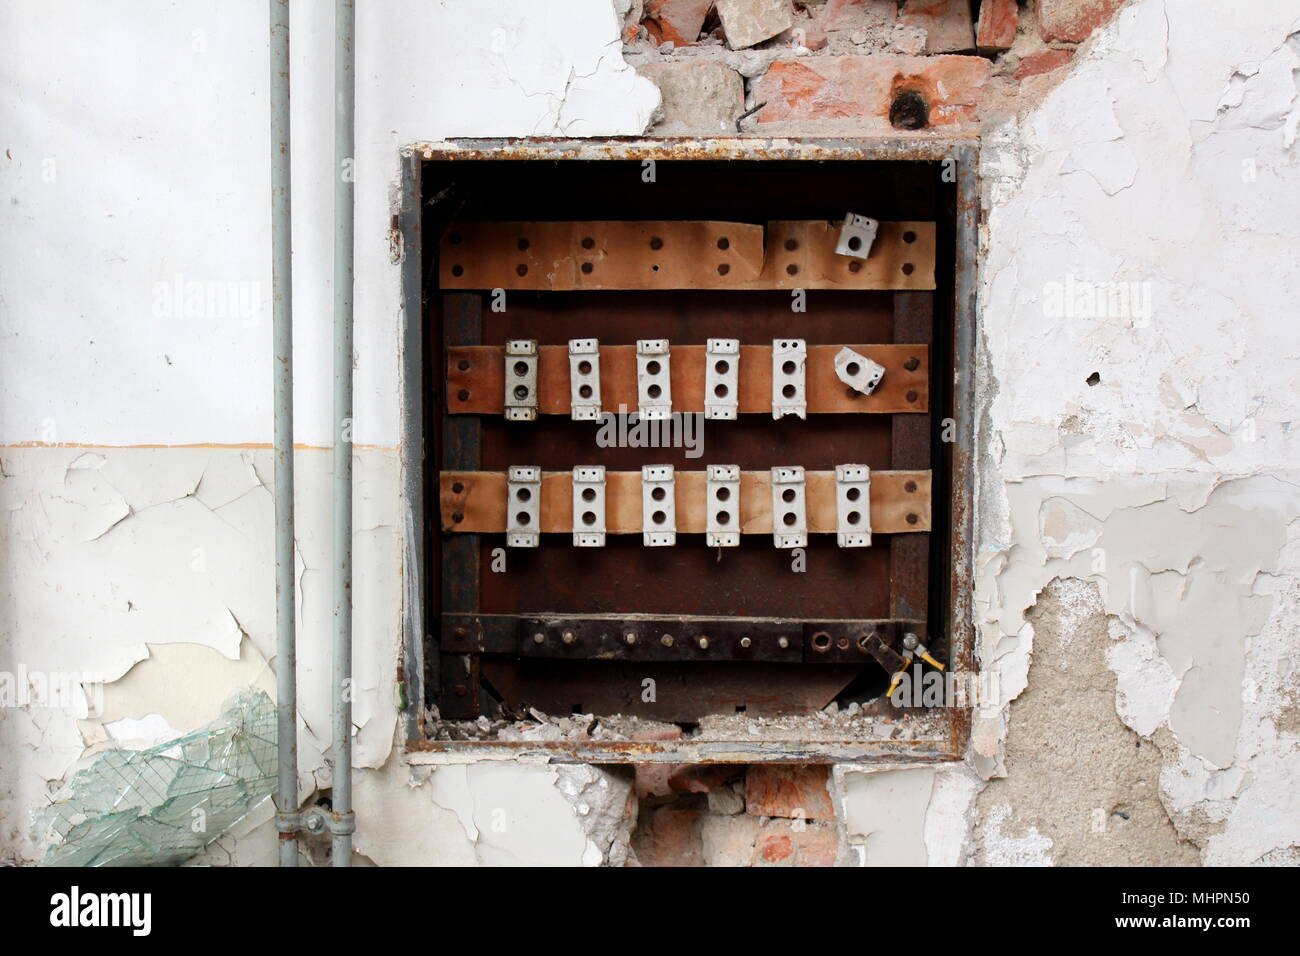 Destroyed rusted old fuse box surrounded with crumbling wall, visible  bricks, radiator pipes and